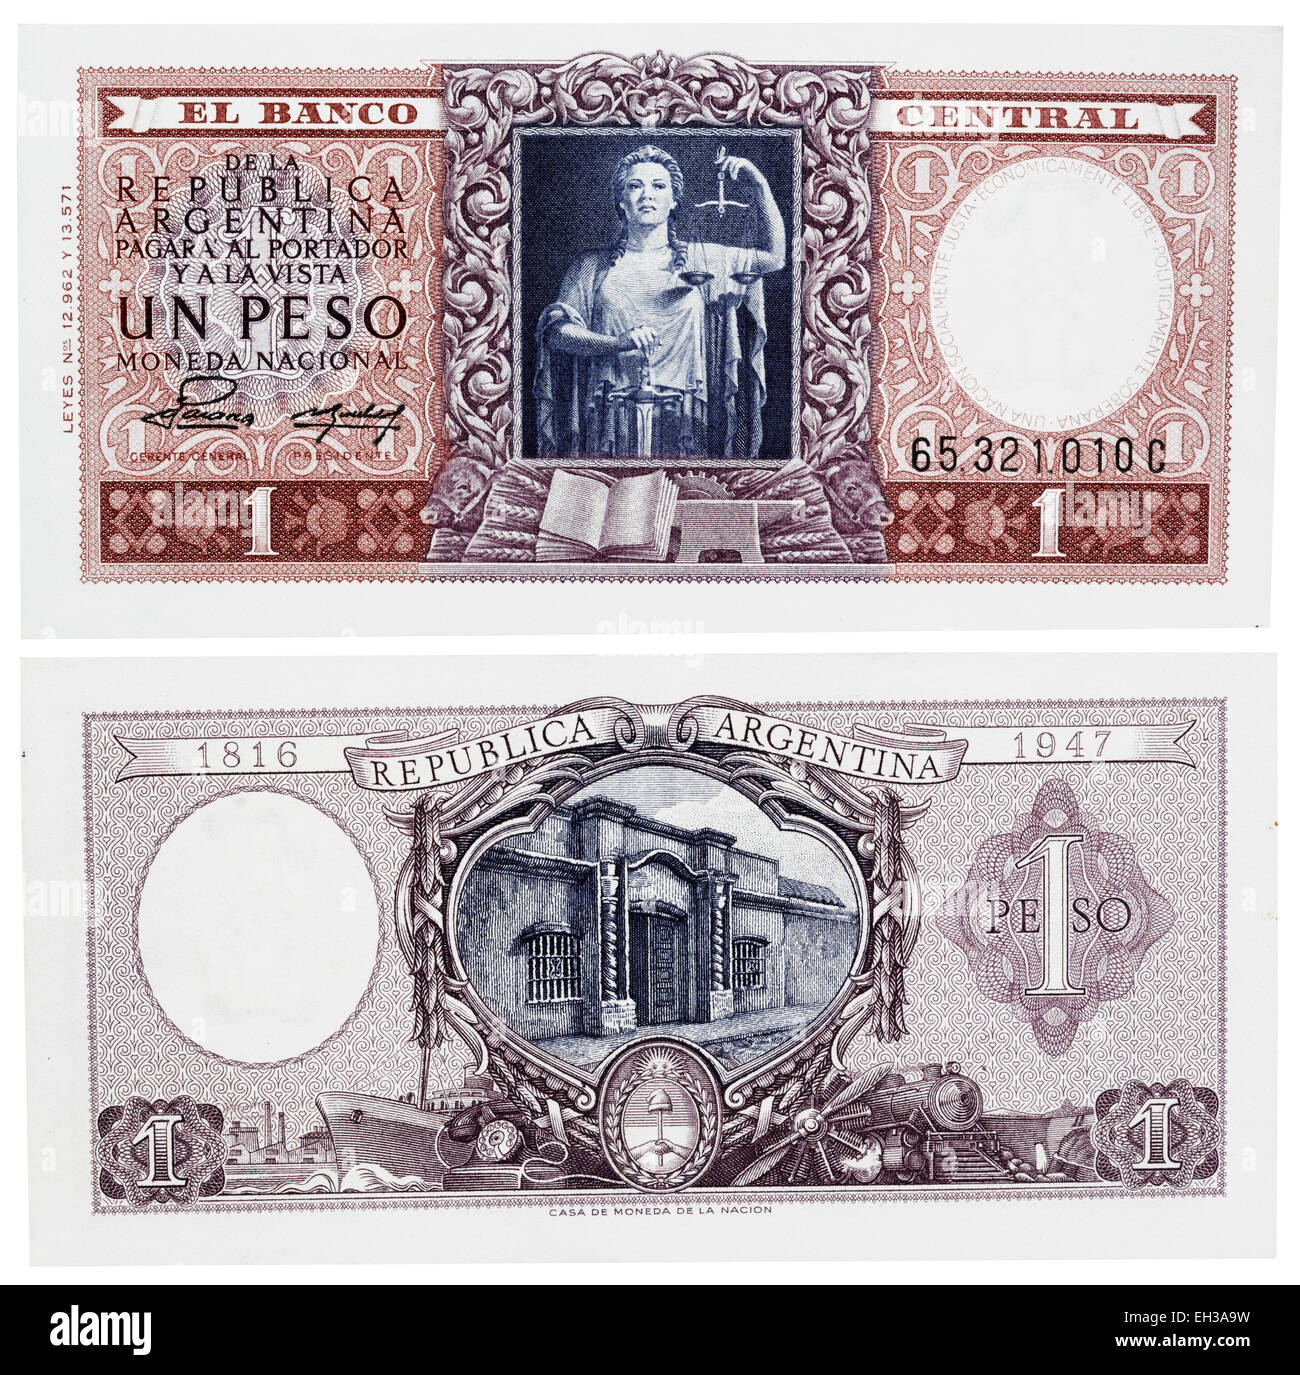 1 peso banknote, Justice, Argentina, 1947 - Stock Image